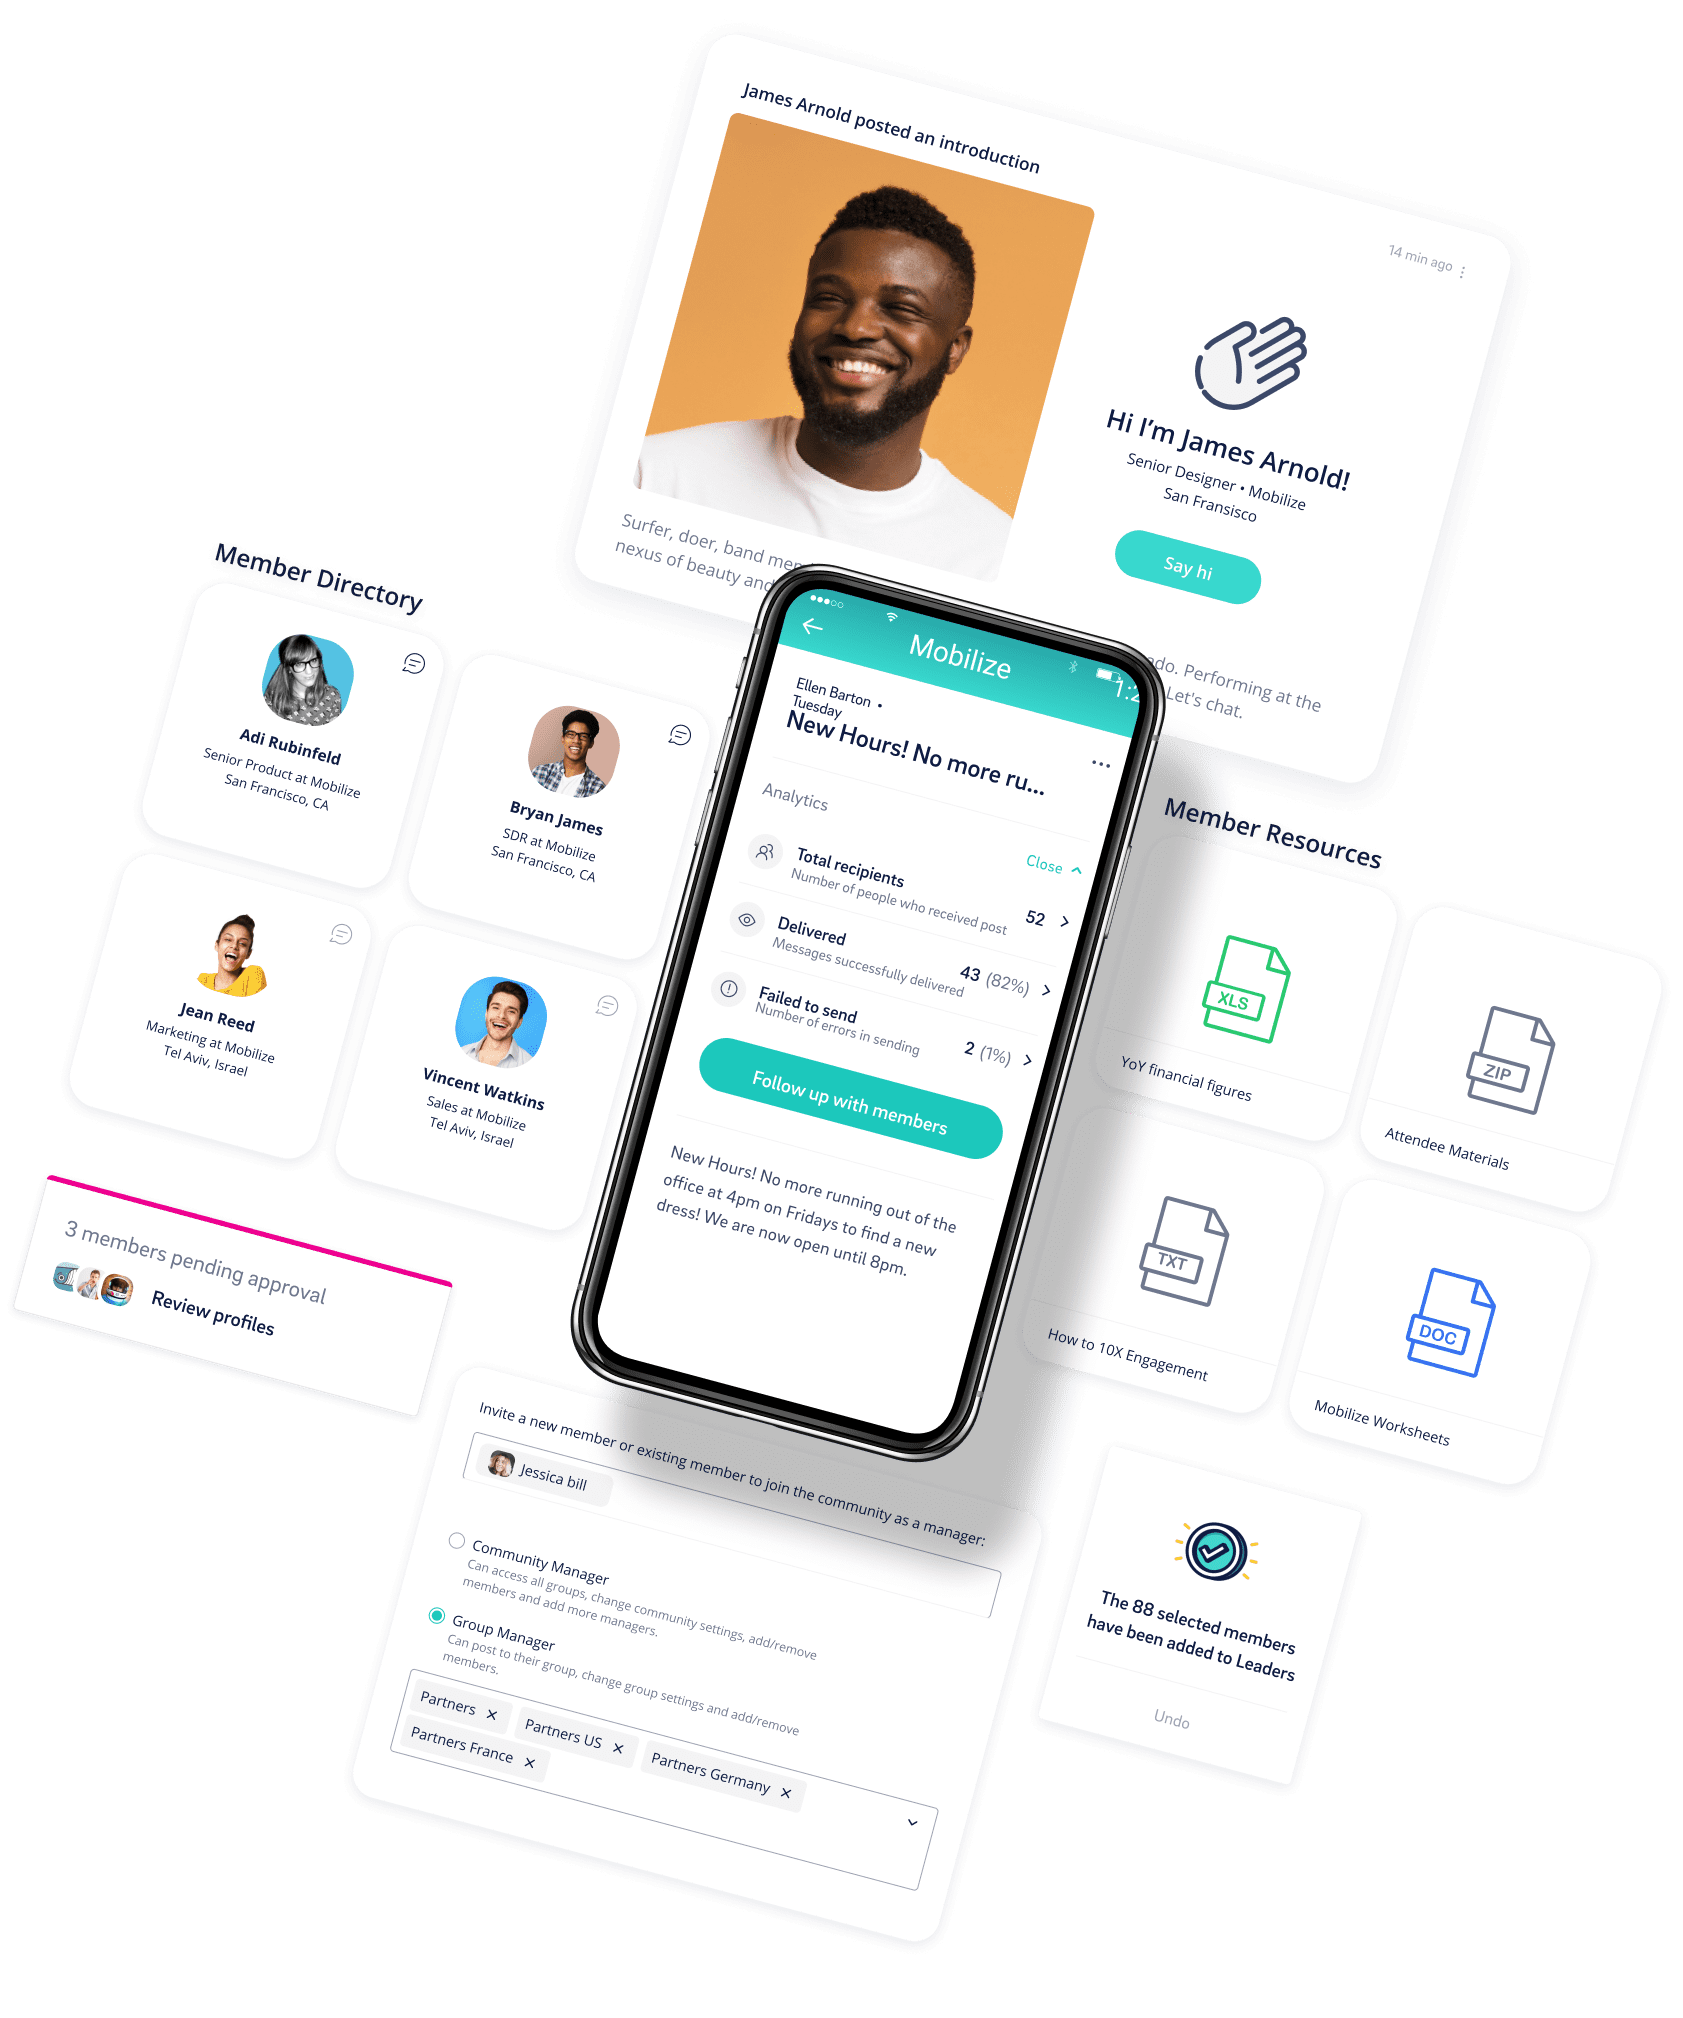 The Mobilize interface on a mobile phone, the member directory, the post type, the resources that users share, and the Mobilize community management interface